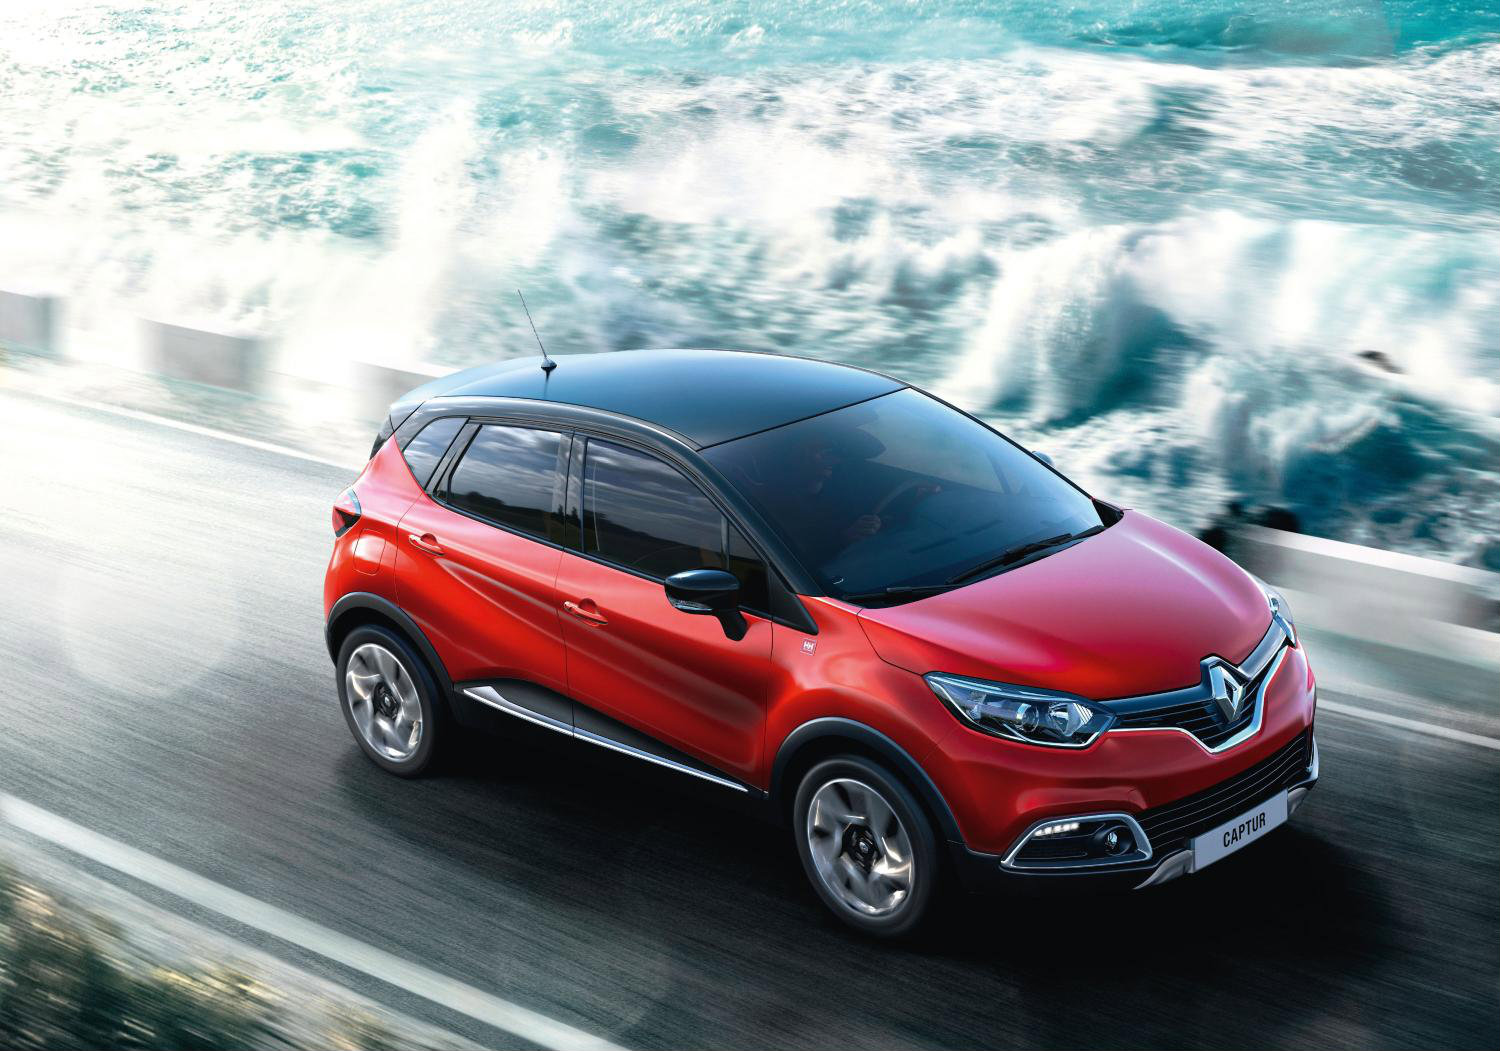 2019 Renault Captur: Redesign, New Platform, Design >> All New Renault Captur To Debut At 2019 Frankfurt Show Will Go